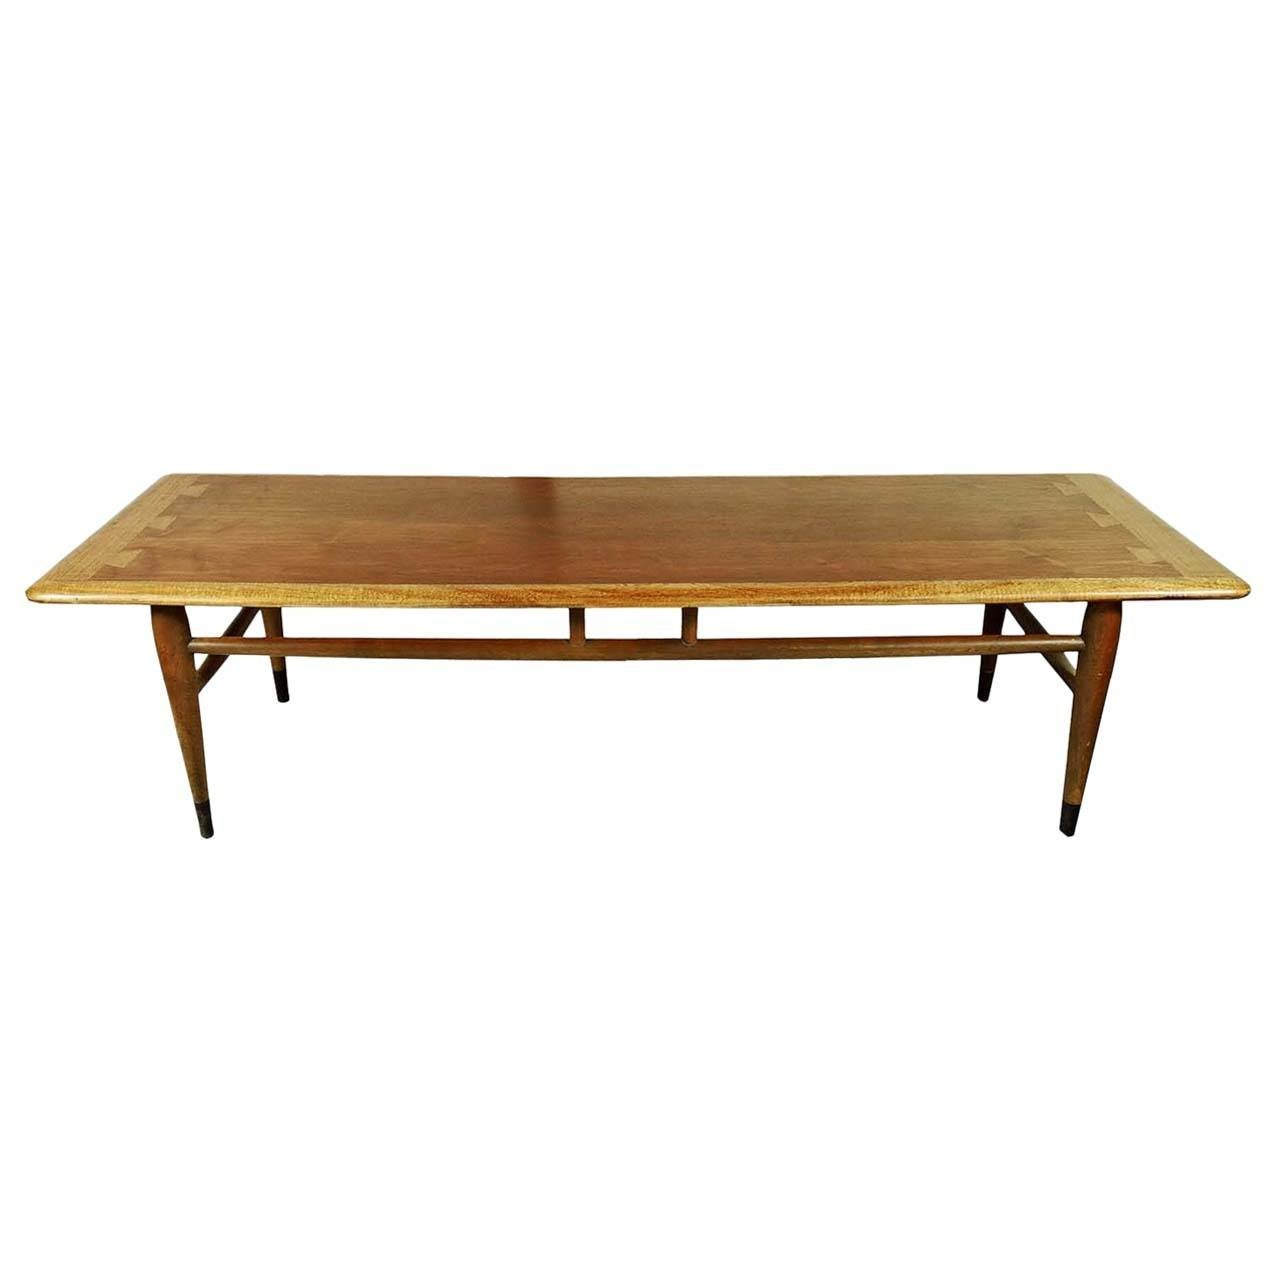 Cb2 Mid Century Coffee Table: Mid-Century Modern Lane Acclaim Series Dovetail Coffee